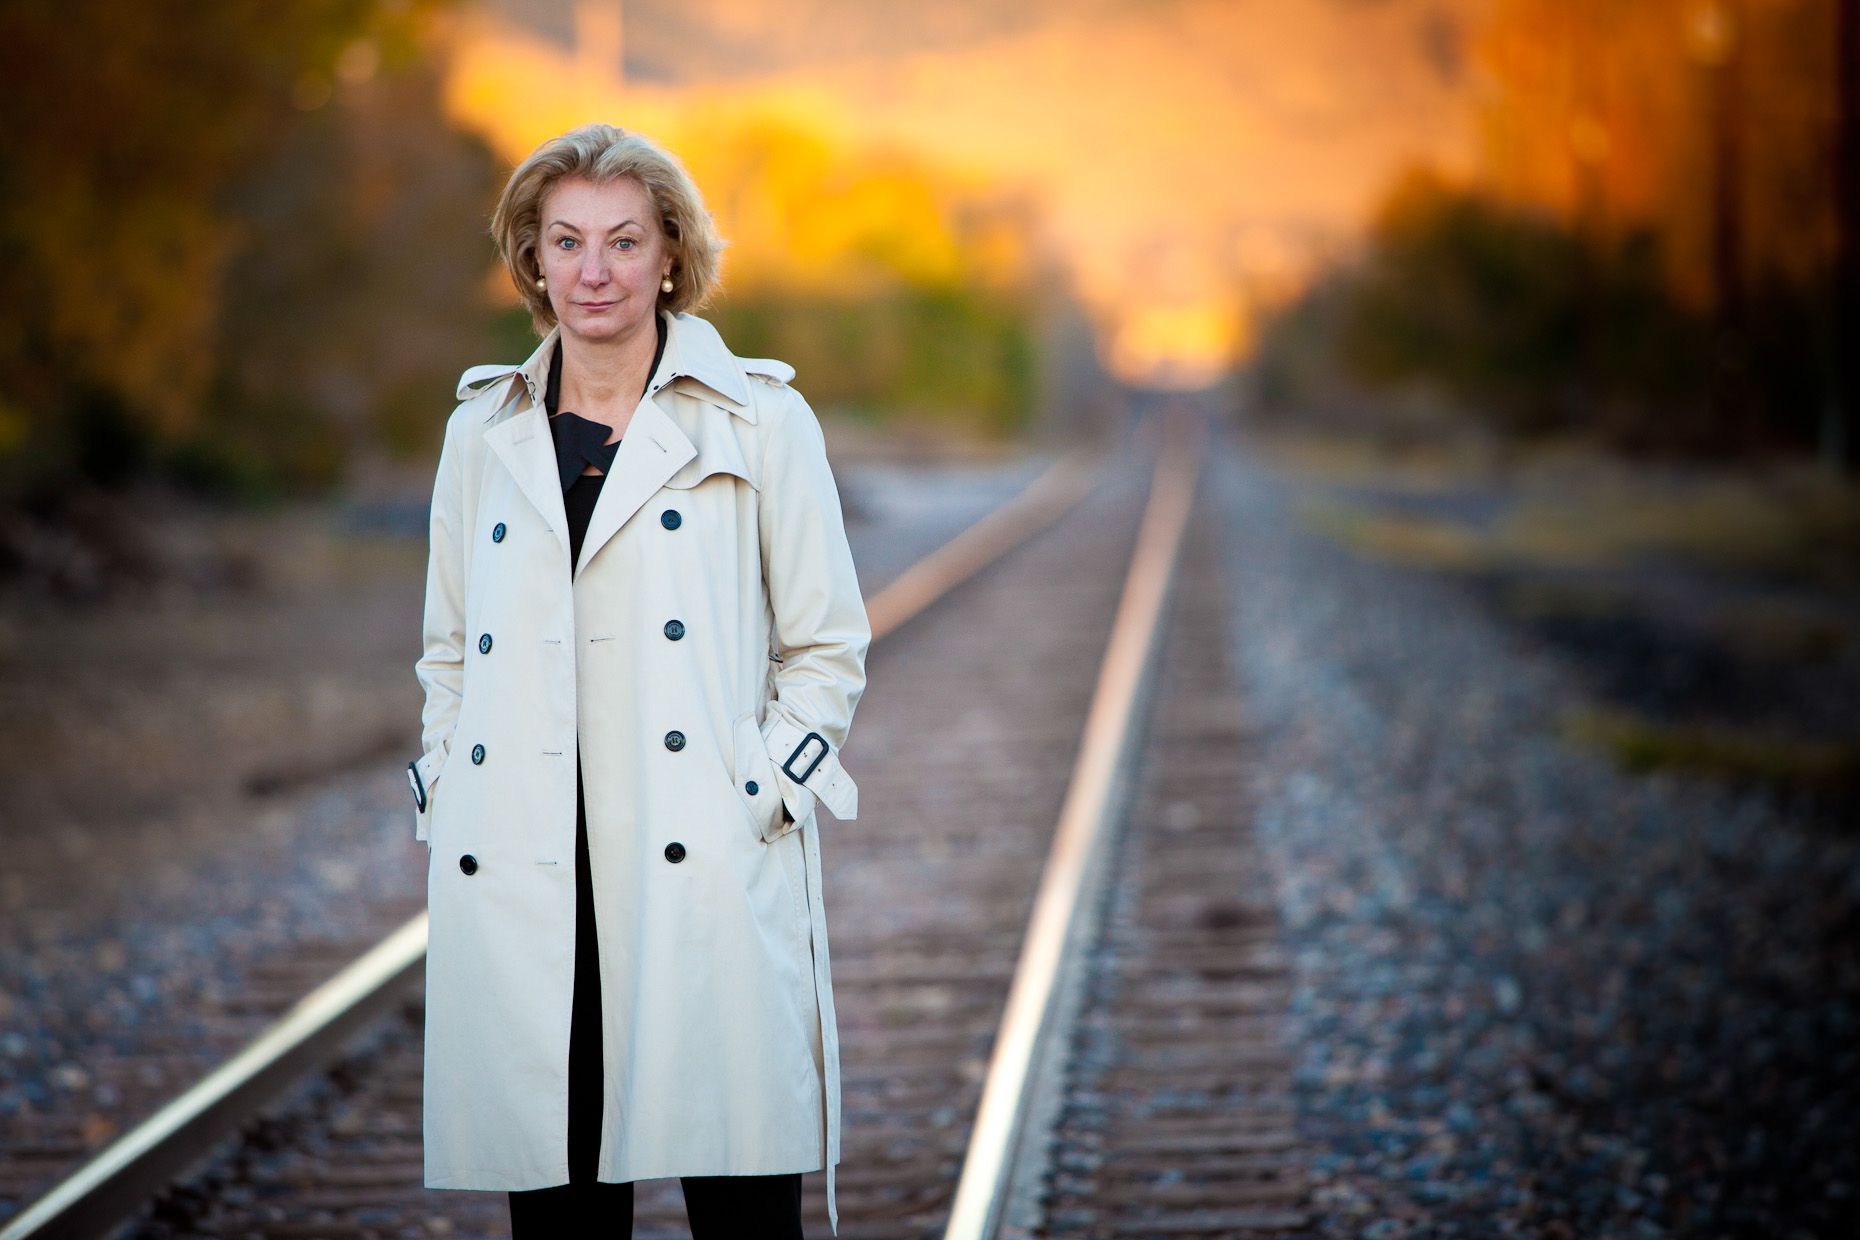 Catherine_Allegra_railroadtracks.JPG